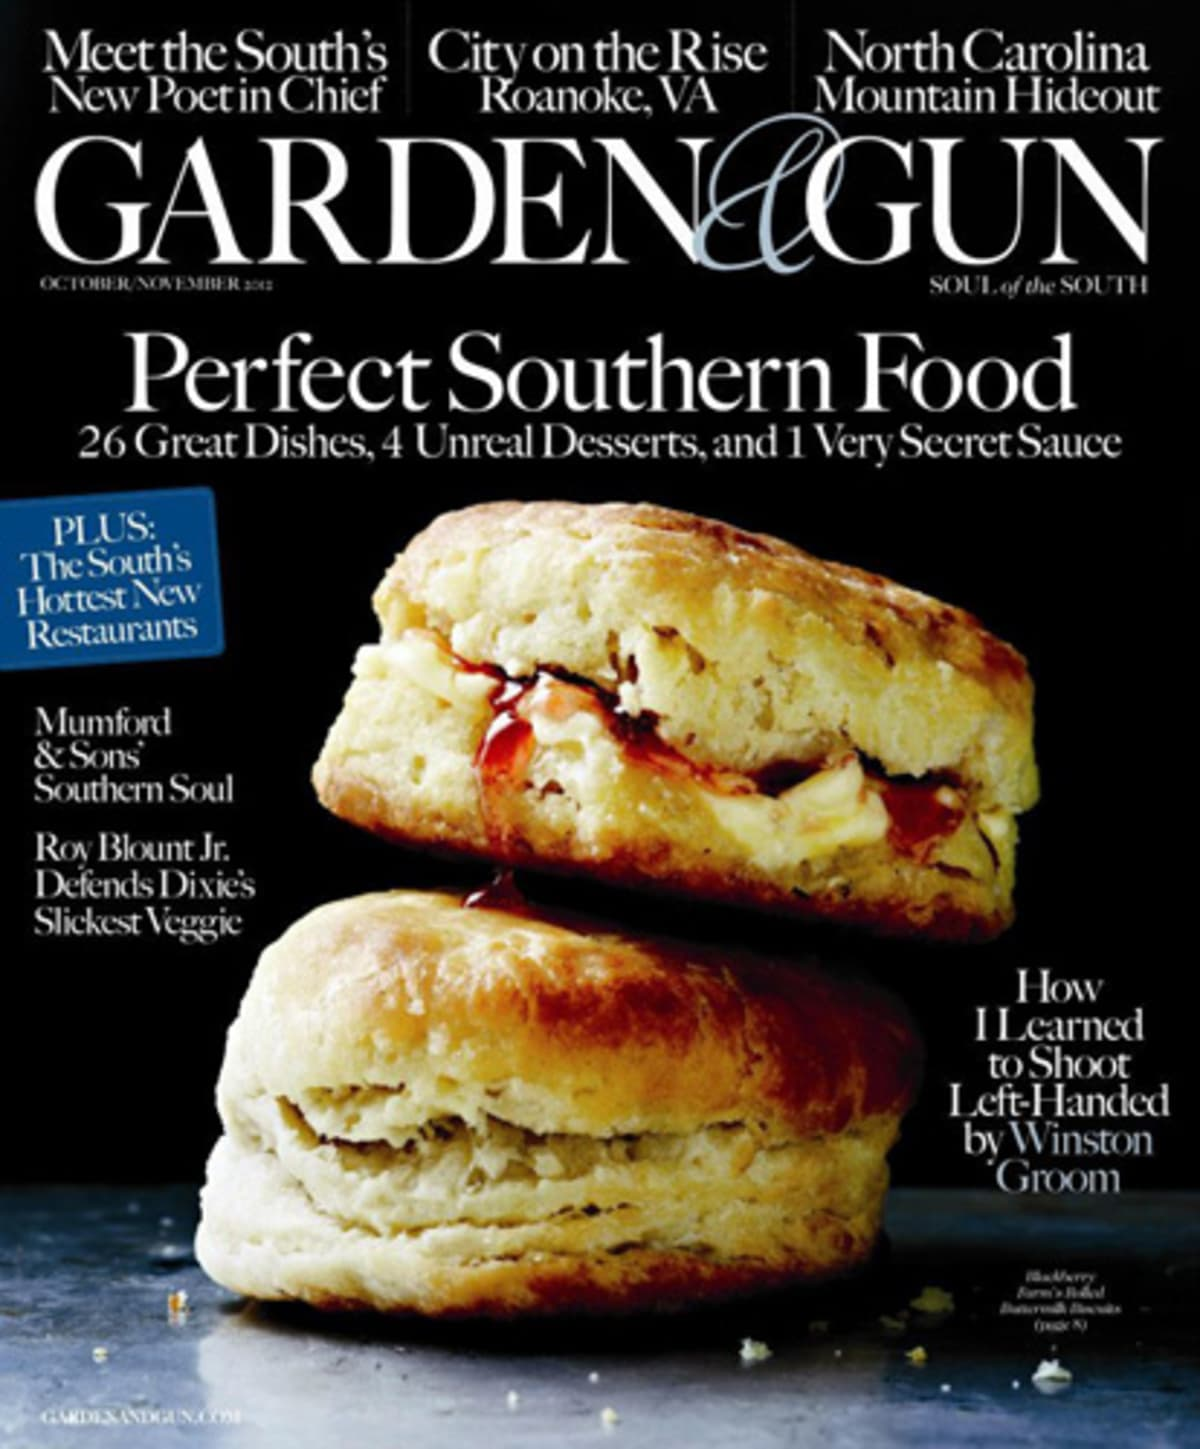 what was the best food magazine cover of 2012 first we